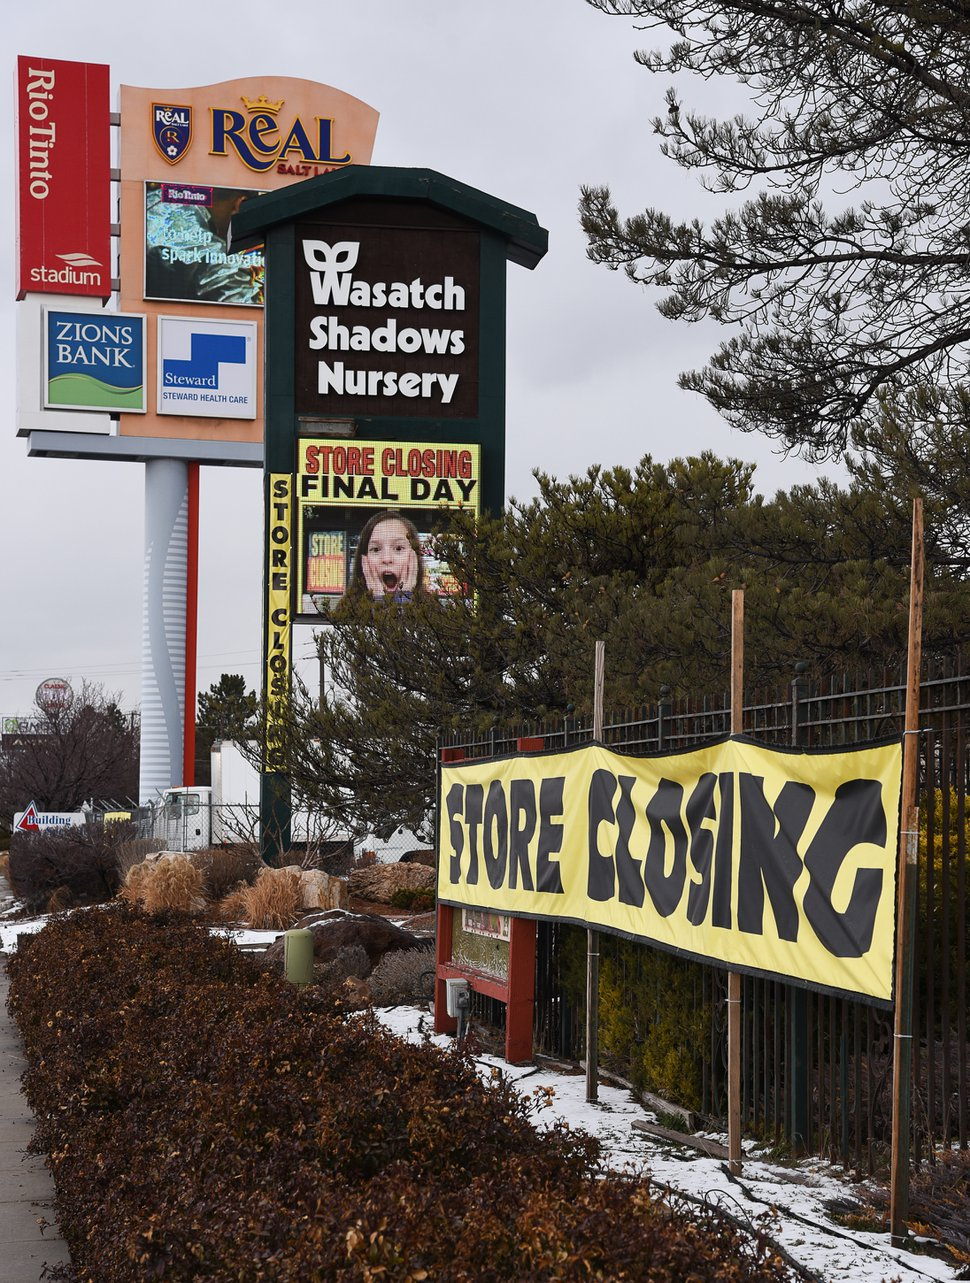 (Francisco Kjolseth | The Salt Lake Tribune) Wednesday marks the official last day of business for Wasatch Shadows garden and landscape center in Sandy. After 42 years, owners, Loren and Debbie Nielsen, are retiring. They have sold the 10 acre plot, just west of the Real Soccer Stadium, to Sandy City for future development.